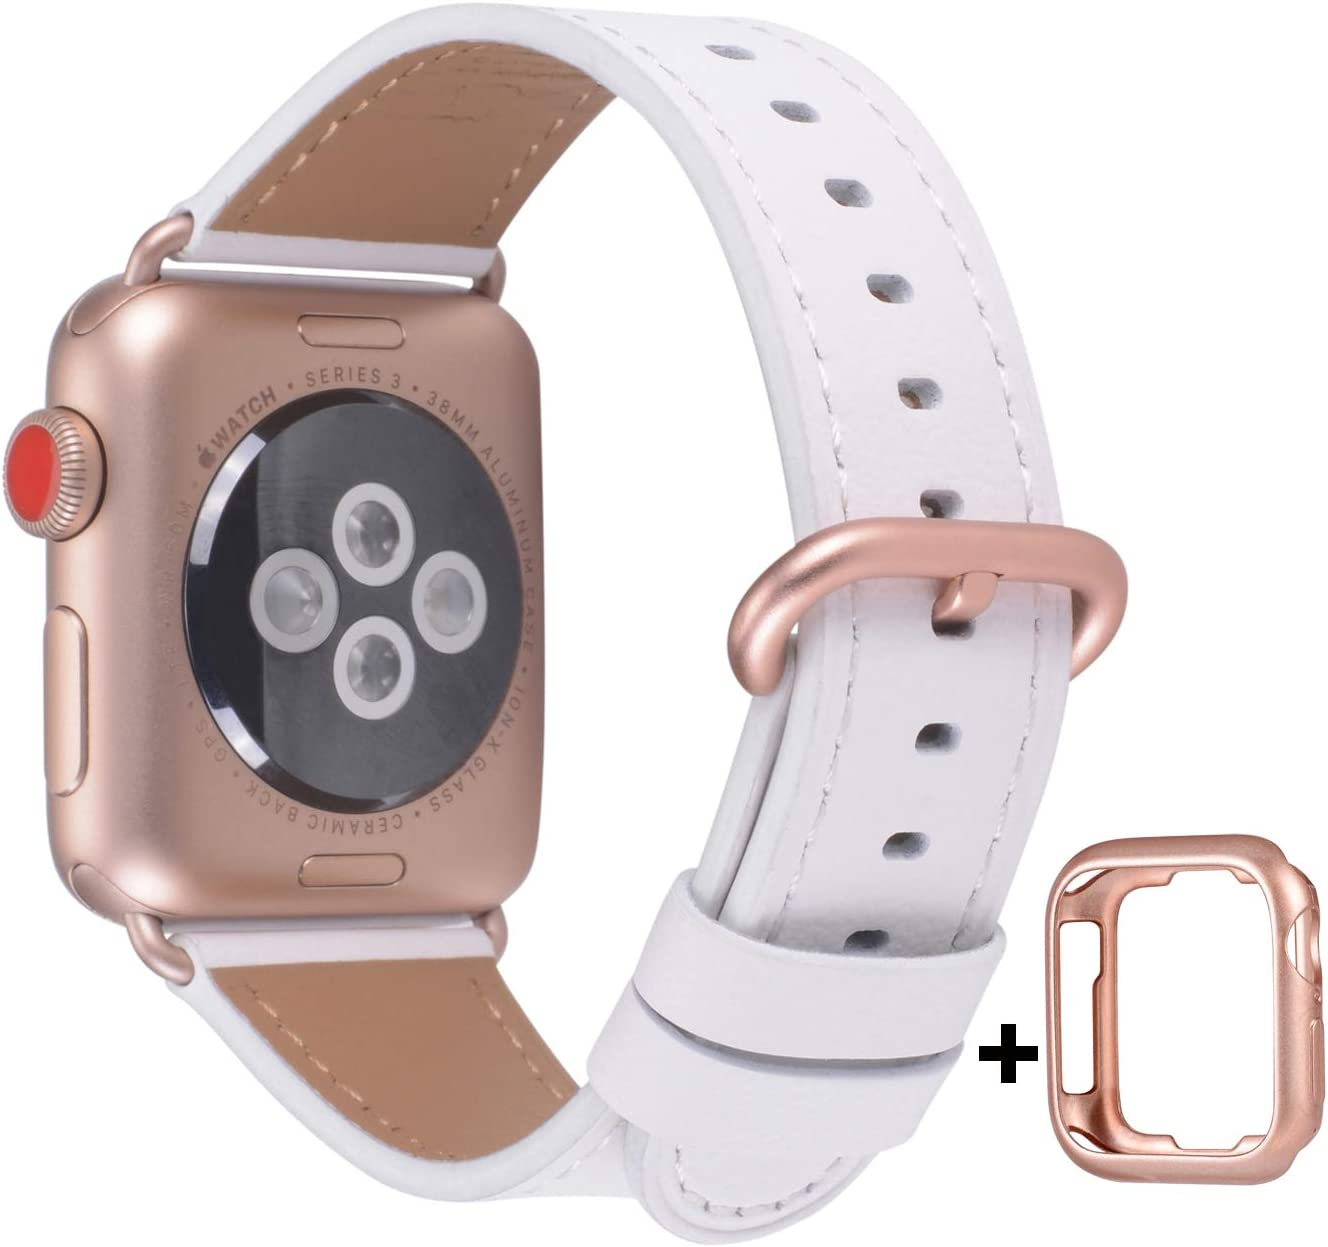 JSGJMY Leather Band Compatible with Apple Watch 38mm 40mm 42mm 44mm Women Men Strap for iWatch SE Series 6 5 4 3 2 1(White+Match SE/6/5/4/3 Rose Gold, 38mm/40mm S/M)